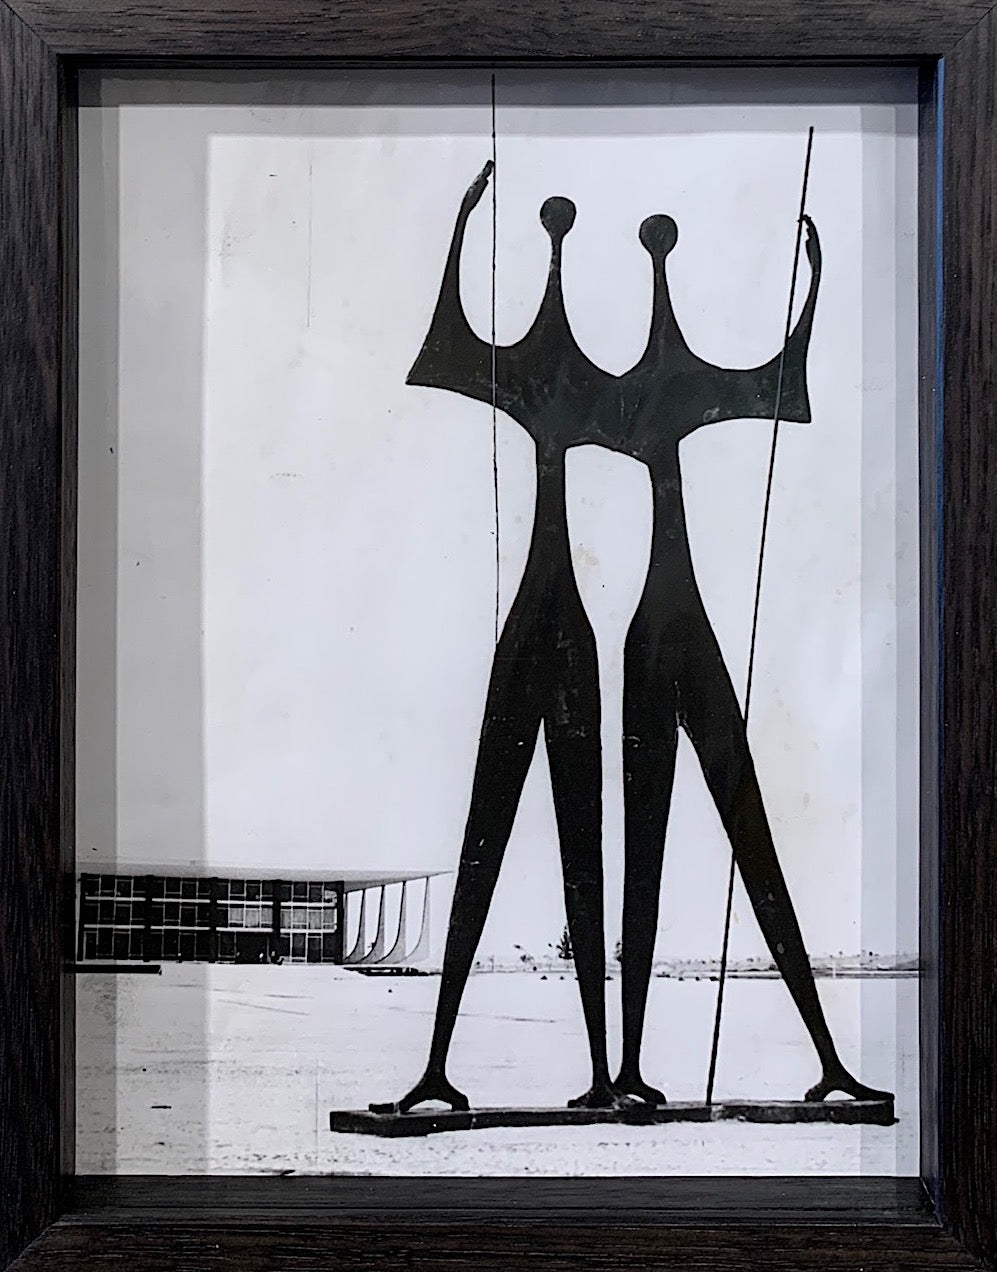 'Os Candangos bronze sculpture,  Brasilia by Bruno Giorgi' - original vintage press photograph